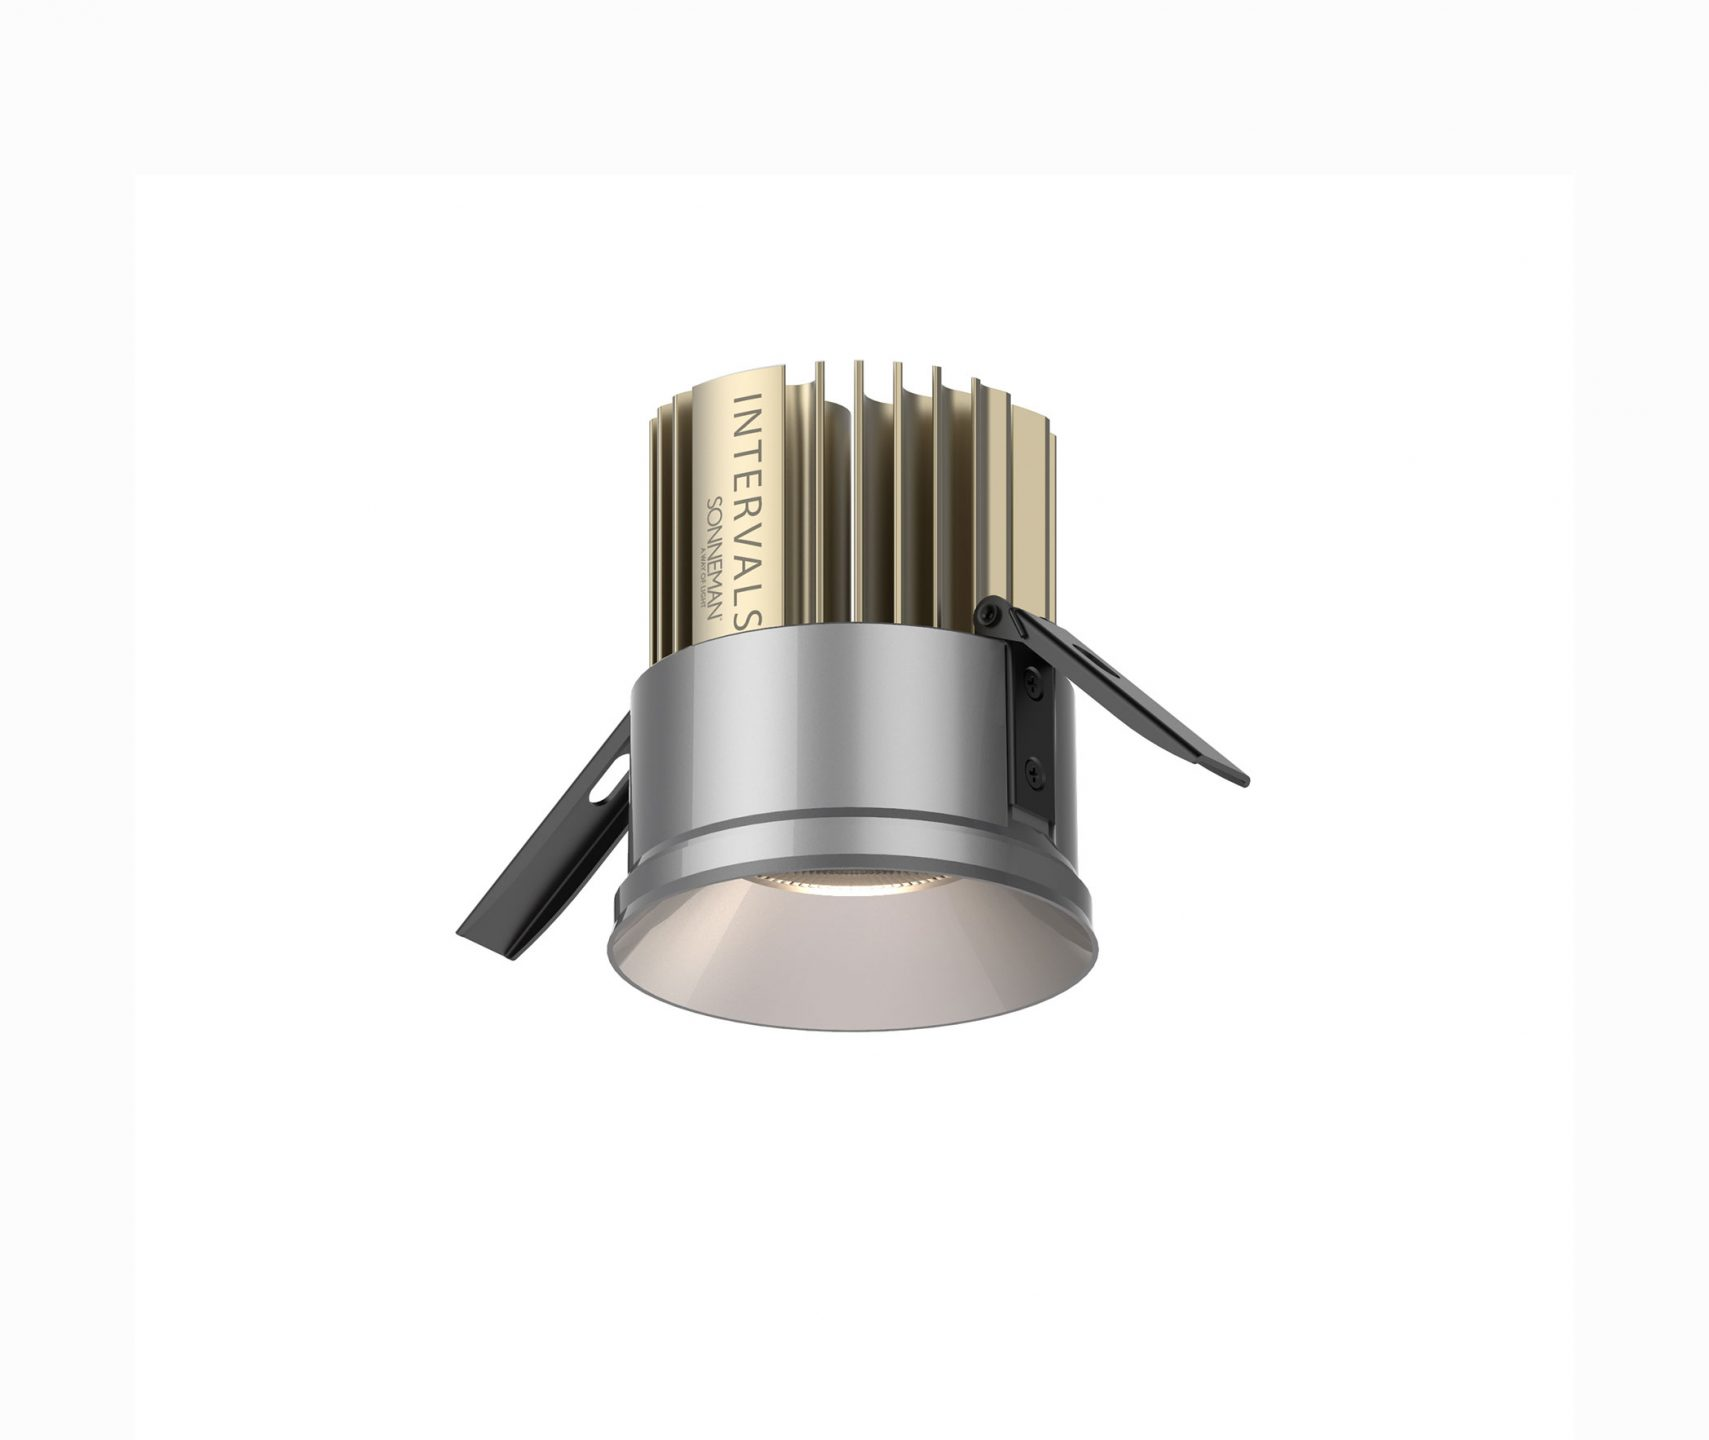 SONNEMAN_Intervals-Recessed-Downlights-Fixed-Round-Bevel-4_int_products